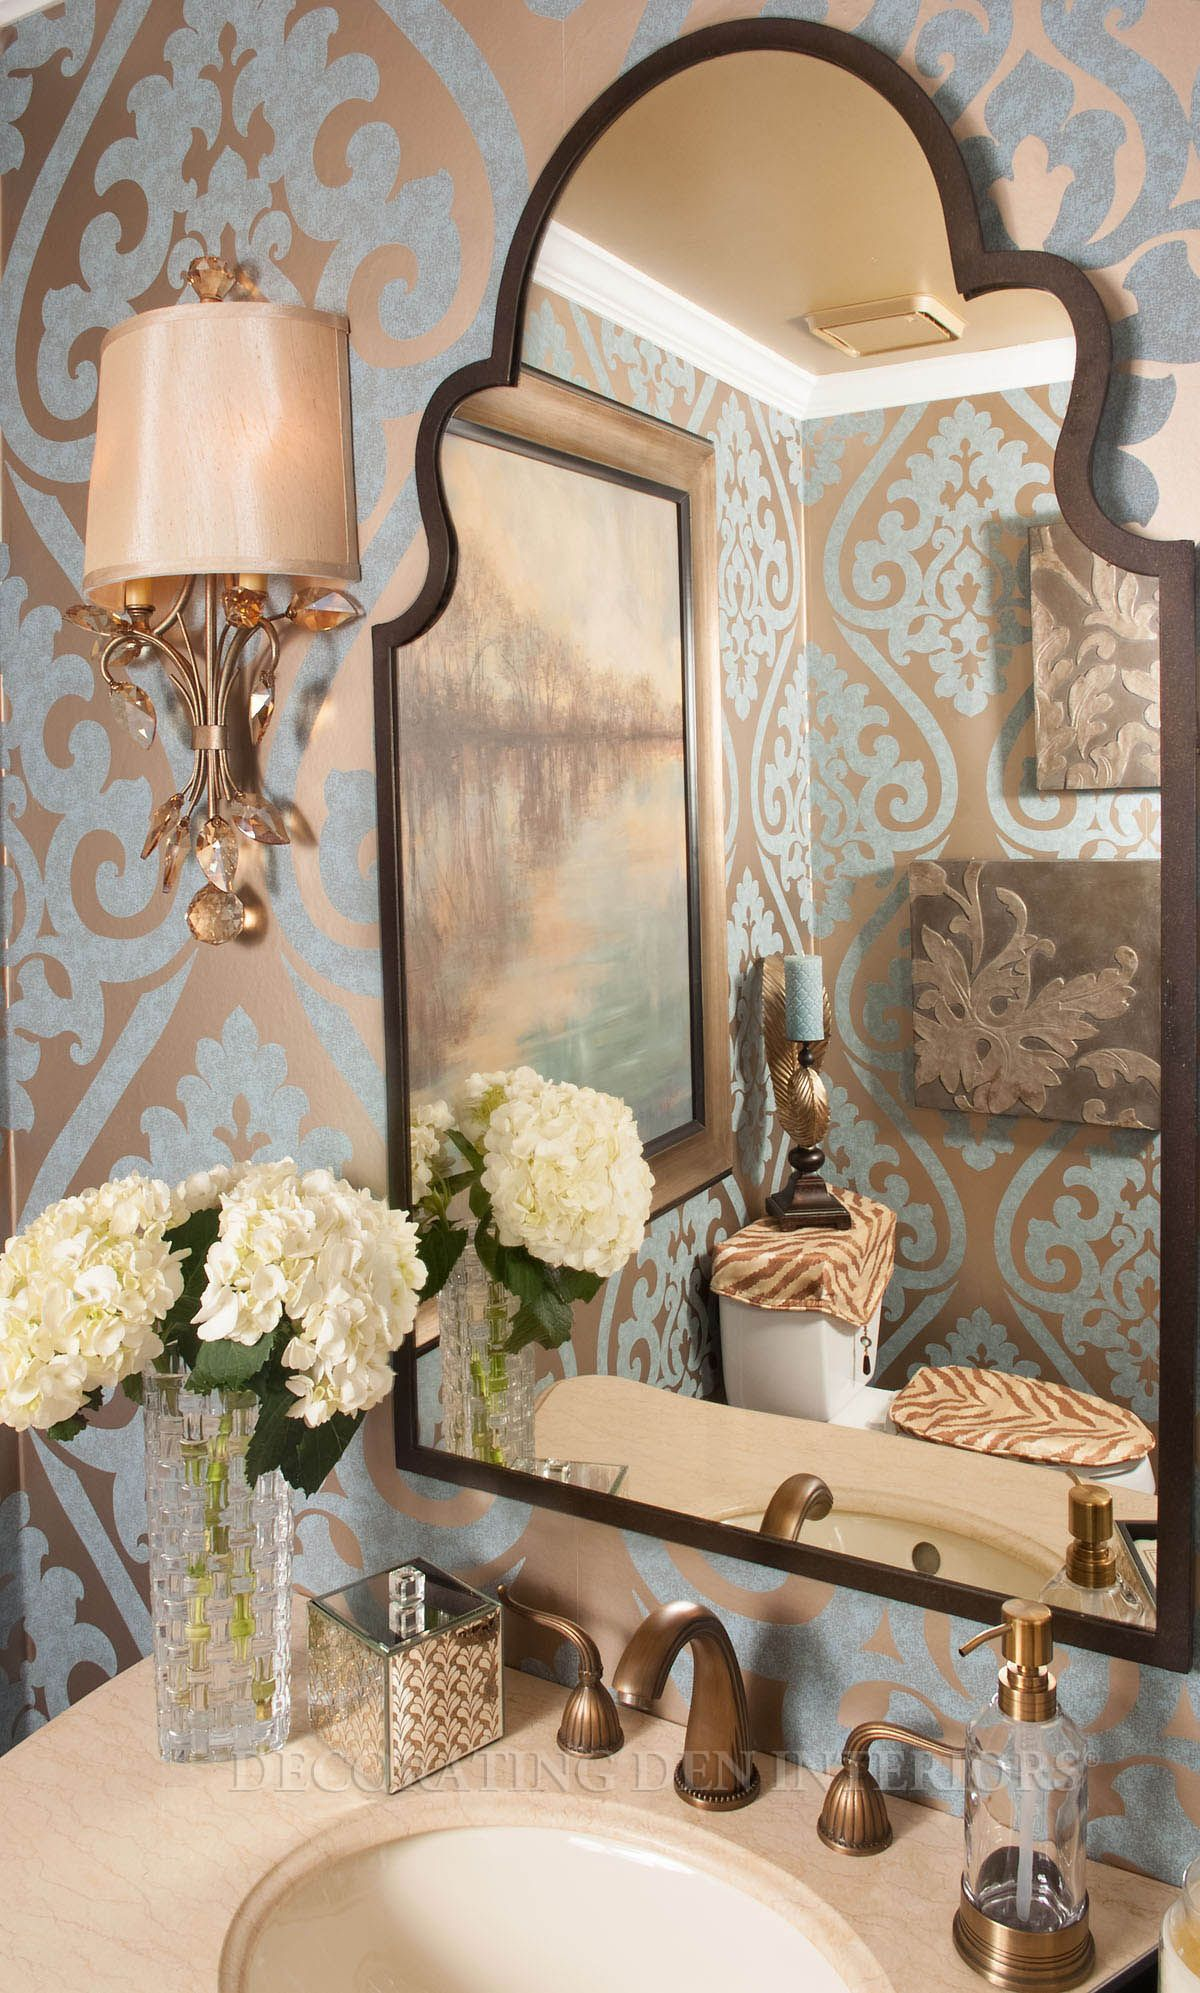 Bathroom Designs By Decorating Den Interiors. Want This Look? Call The  Landry Team To